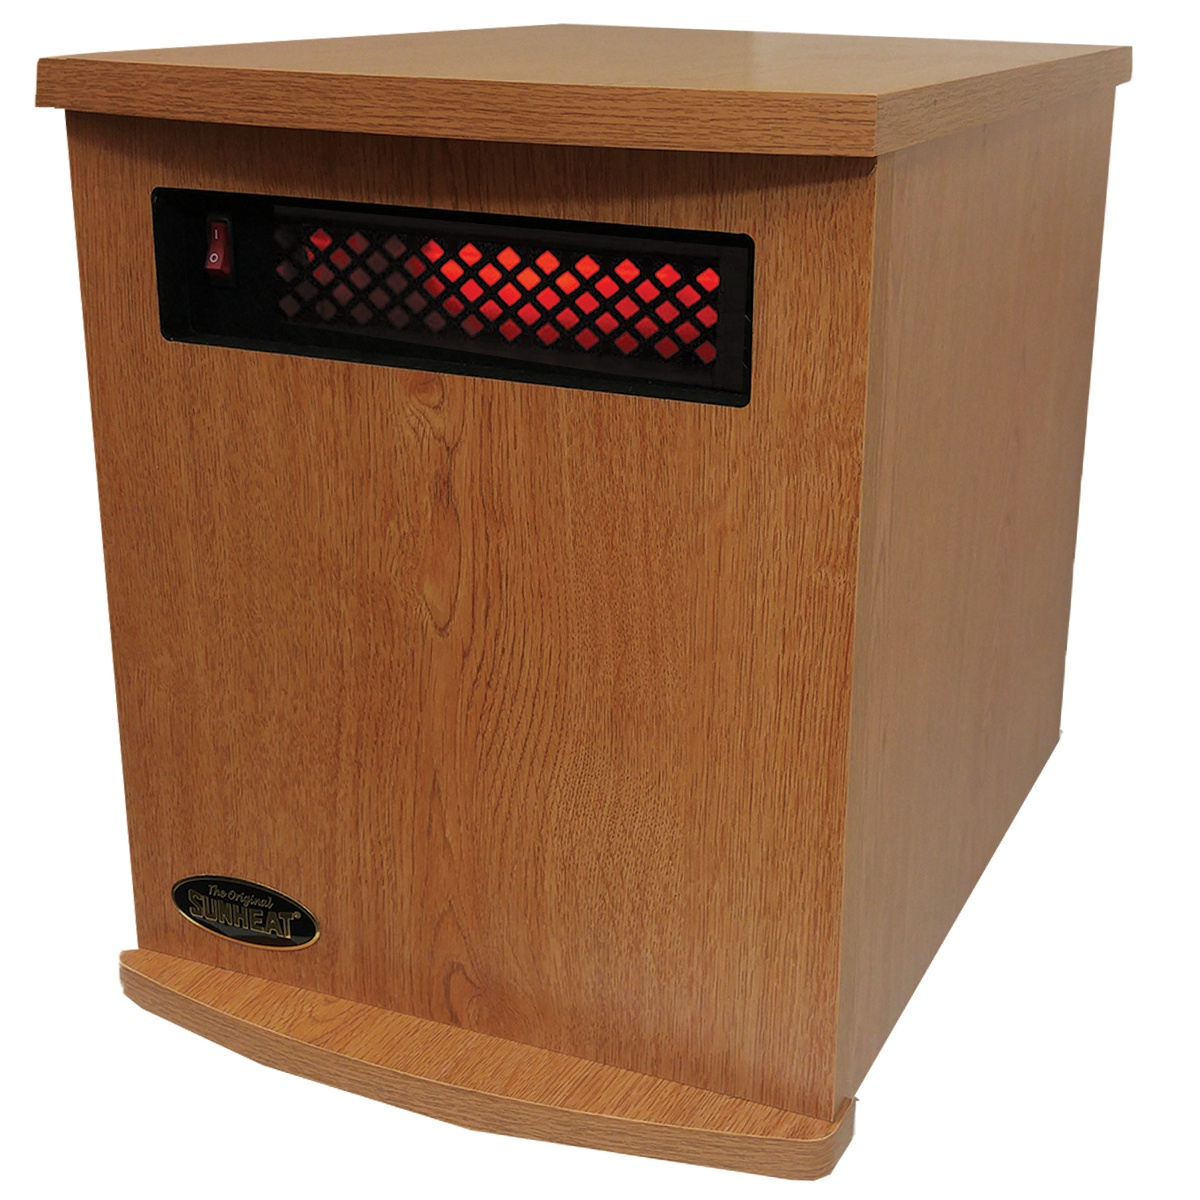 American Made Infrared Cabinet Portable Heater on Rollers by SUNHEAT USA1500-M Oak